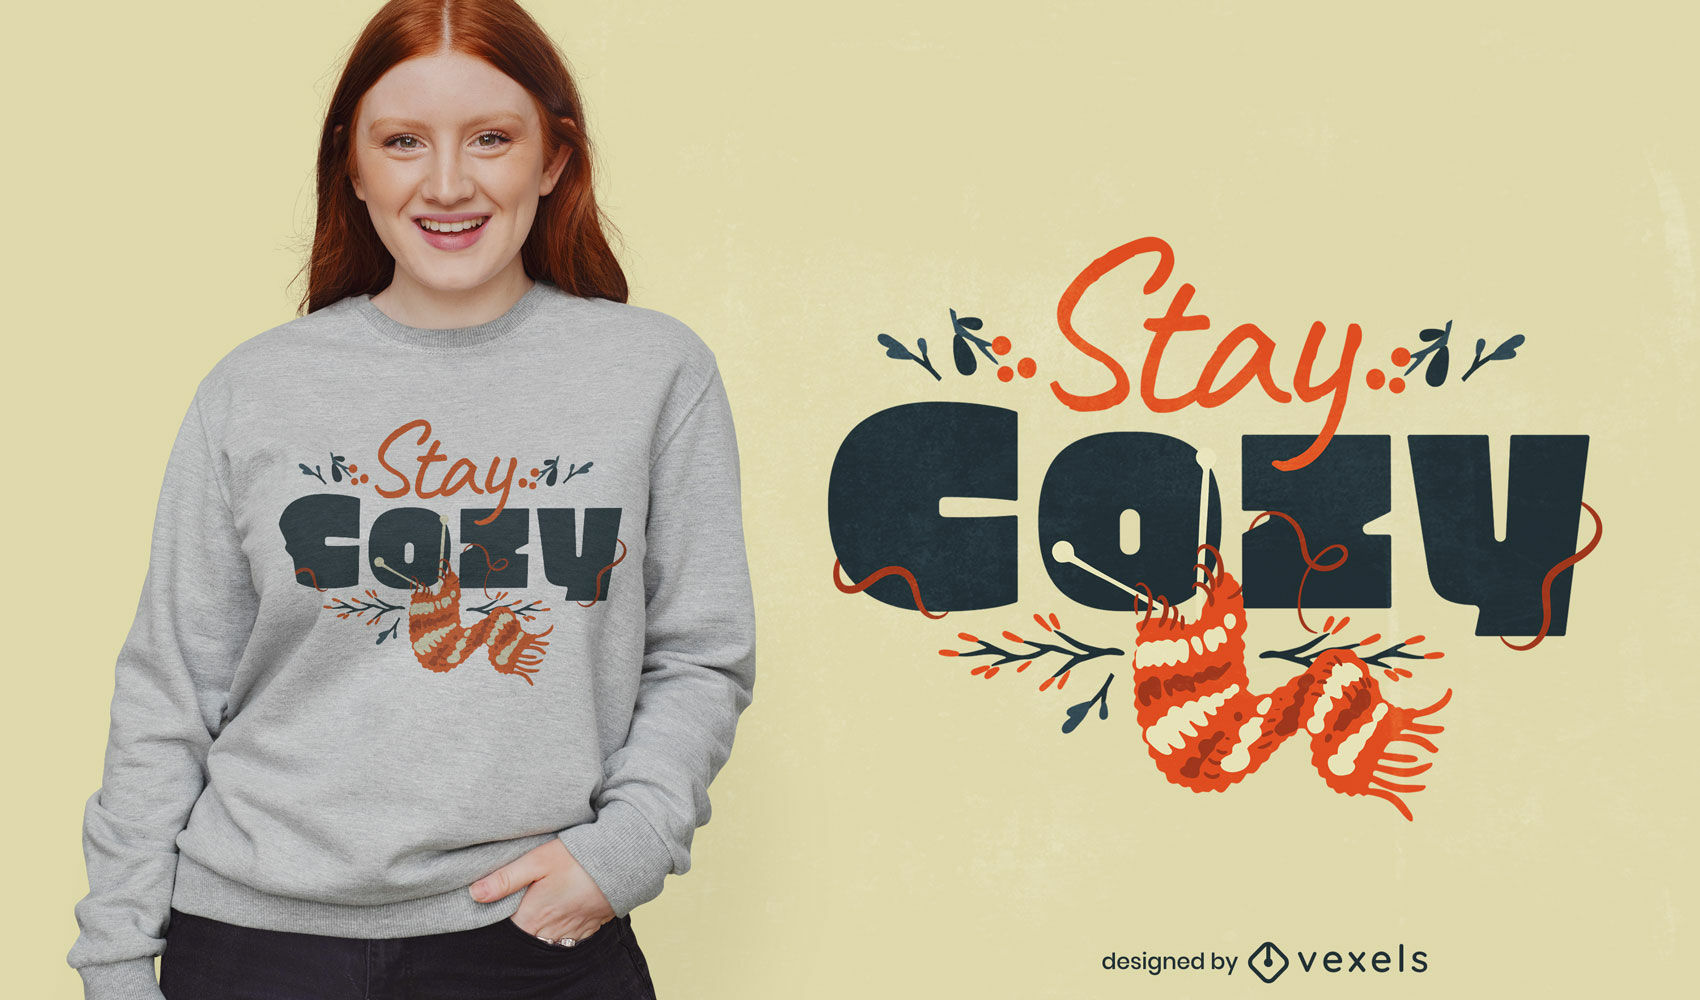 Lovely cozy quote t-shirt design